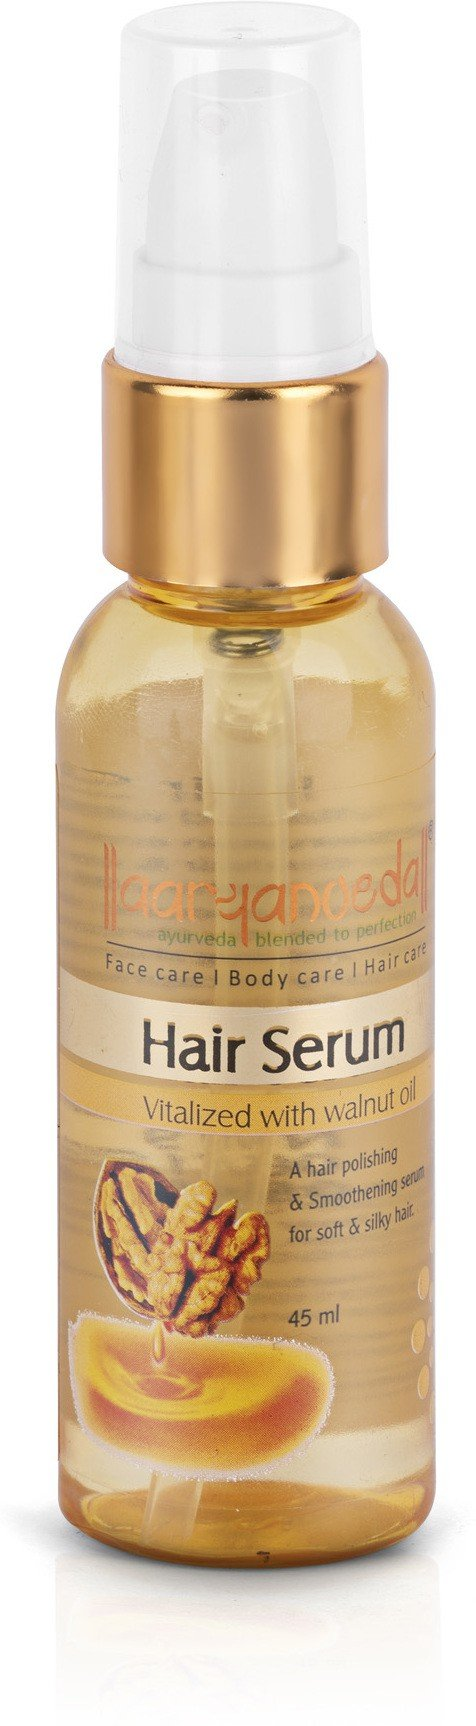 Aryanveda Herbals Hair Serum For All Hair Type 45 Ml